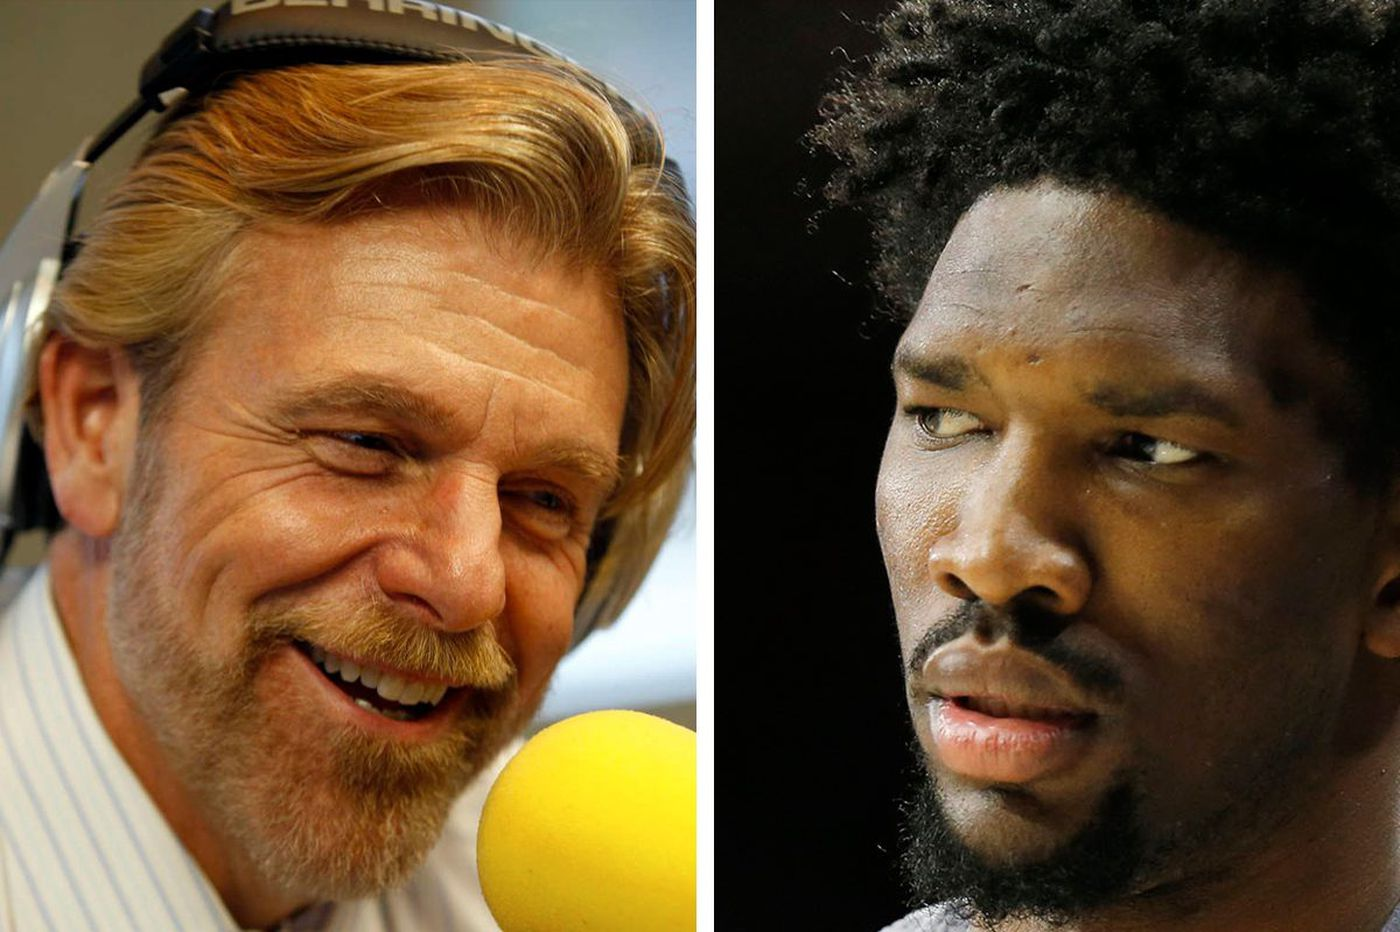 Joel Embiid and Howard Eskin go after one another